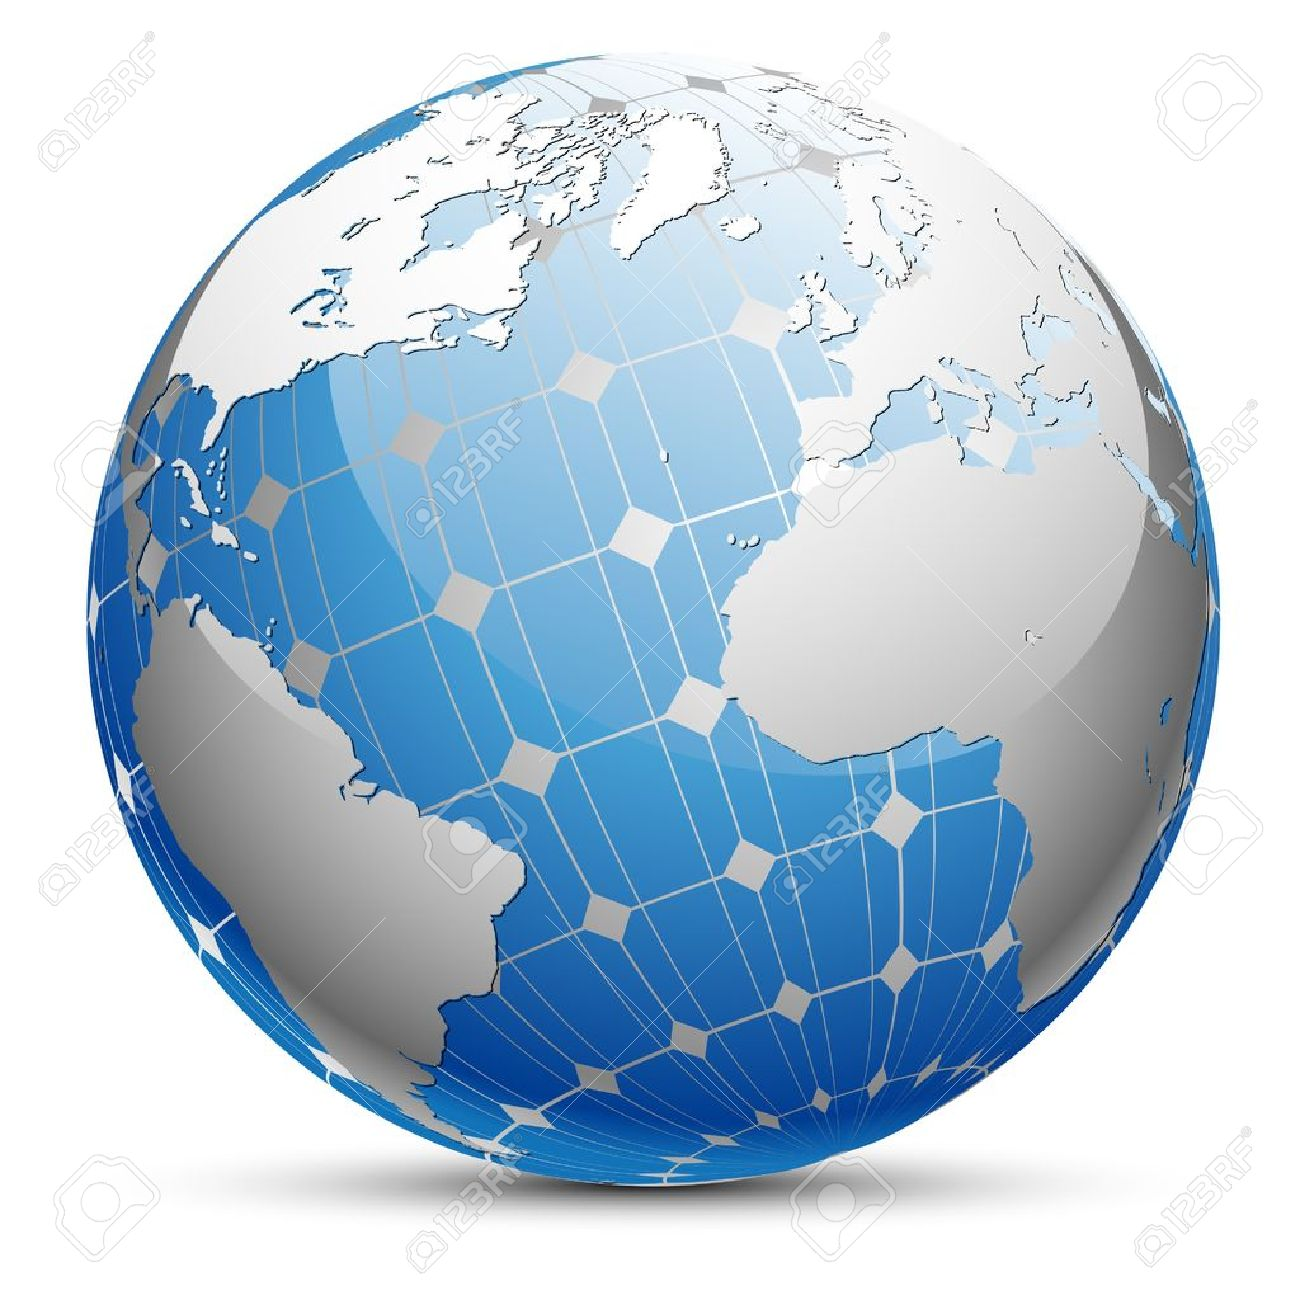 Abstract illustration of the planet Earth with a solar panel. Standard-Bild - 15476417